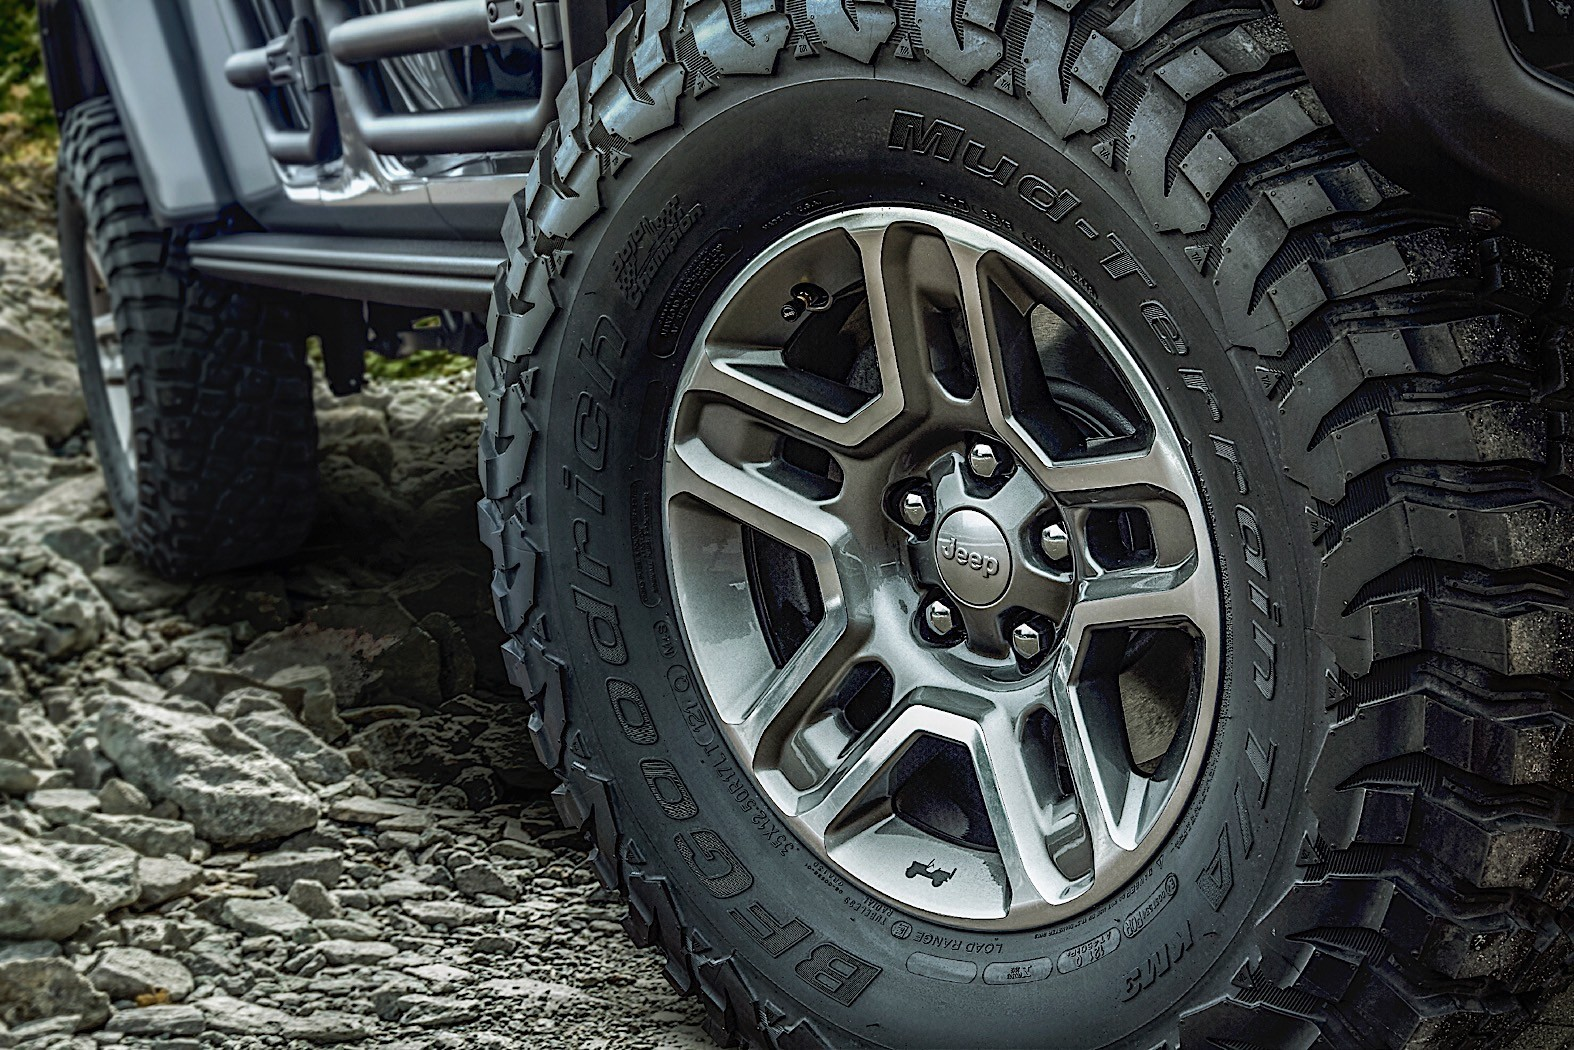 Jeep Gladiator Weaponized By Mopar In Los Angeles besides Jeep Grand Cherokee Srt further Belaz moreover Ford Everest High Resolution together with Hqdefault. on 2019 jeep grand cherokee